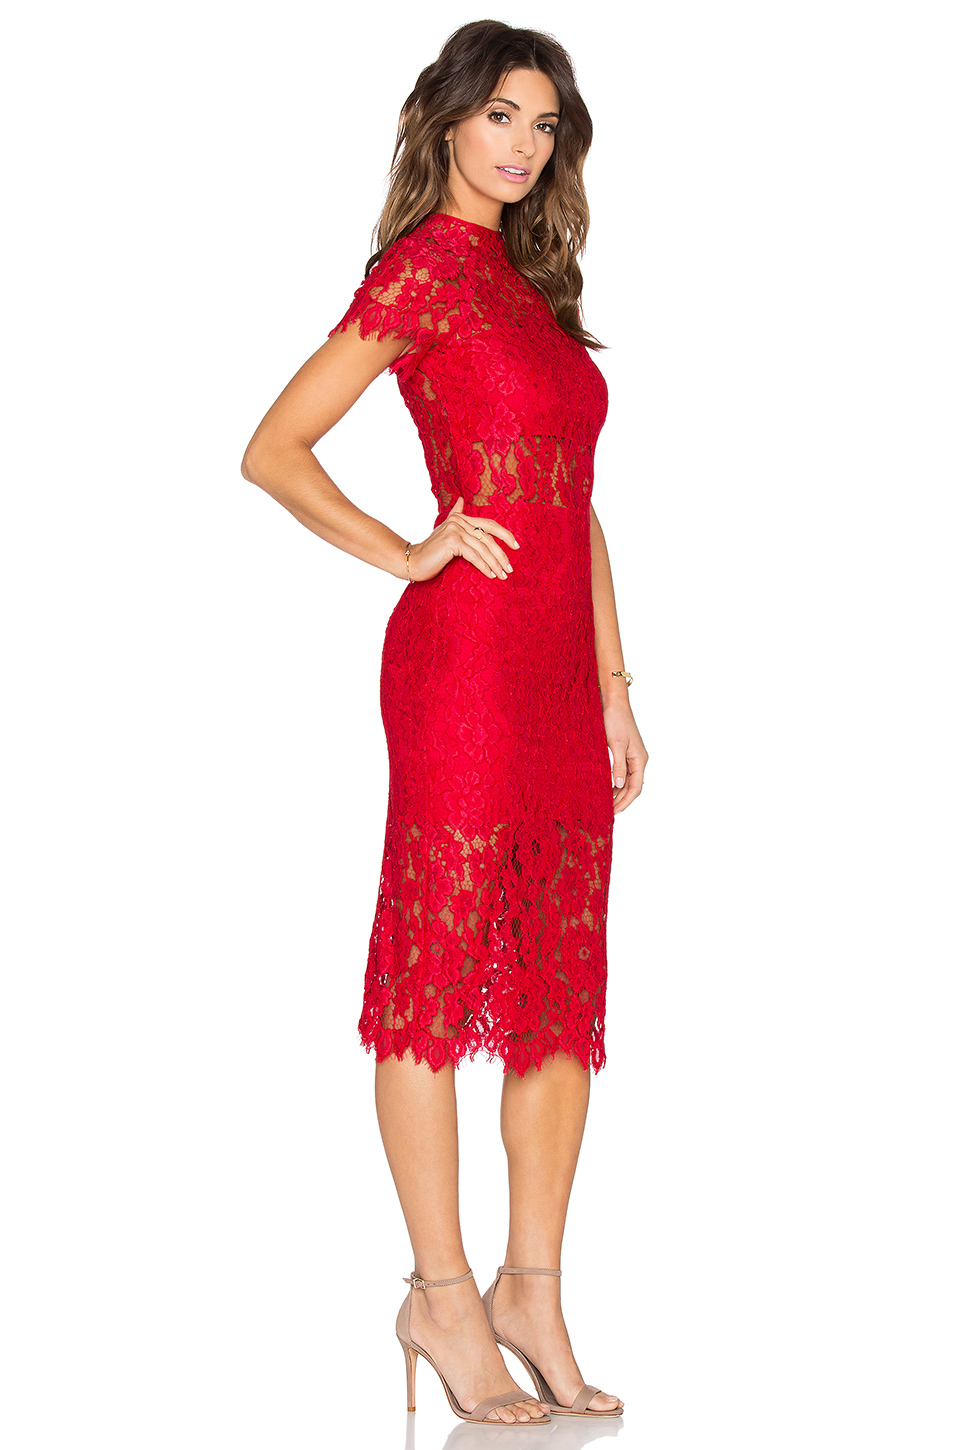 Lyst - Alexis Leona Lace Dress in Red